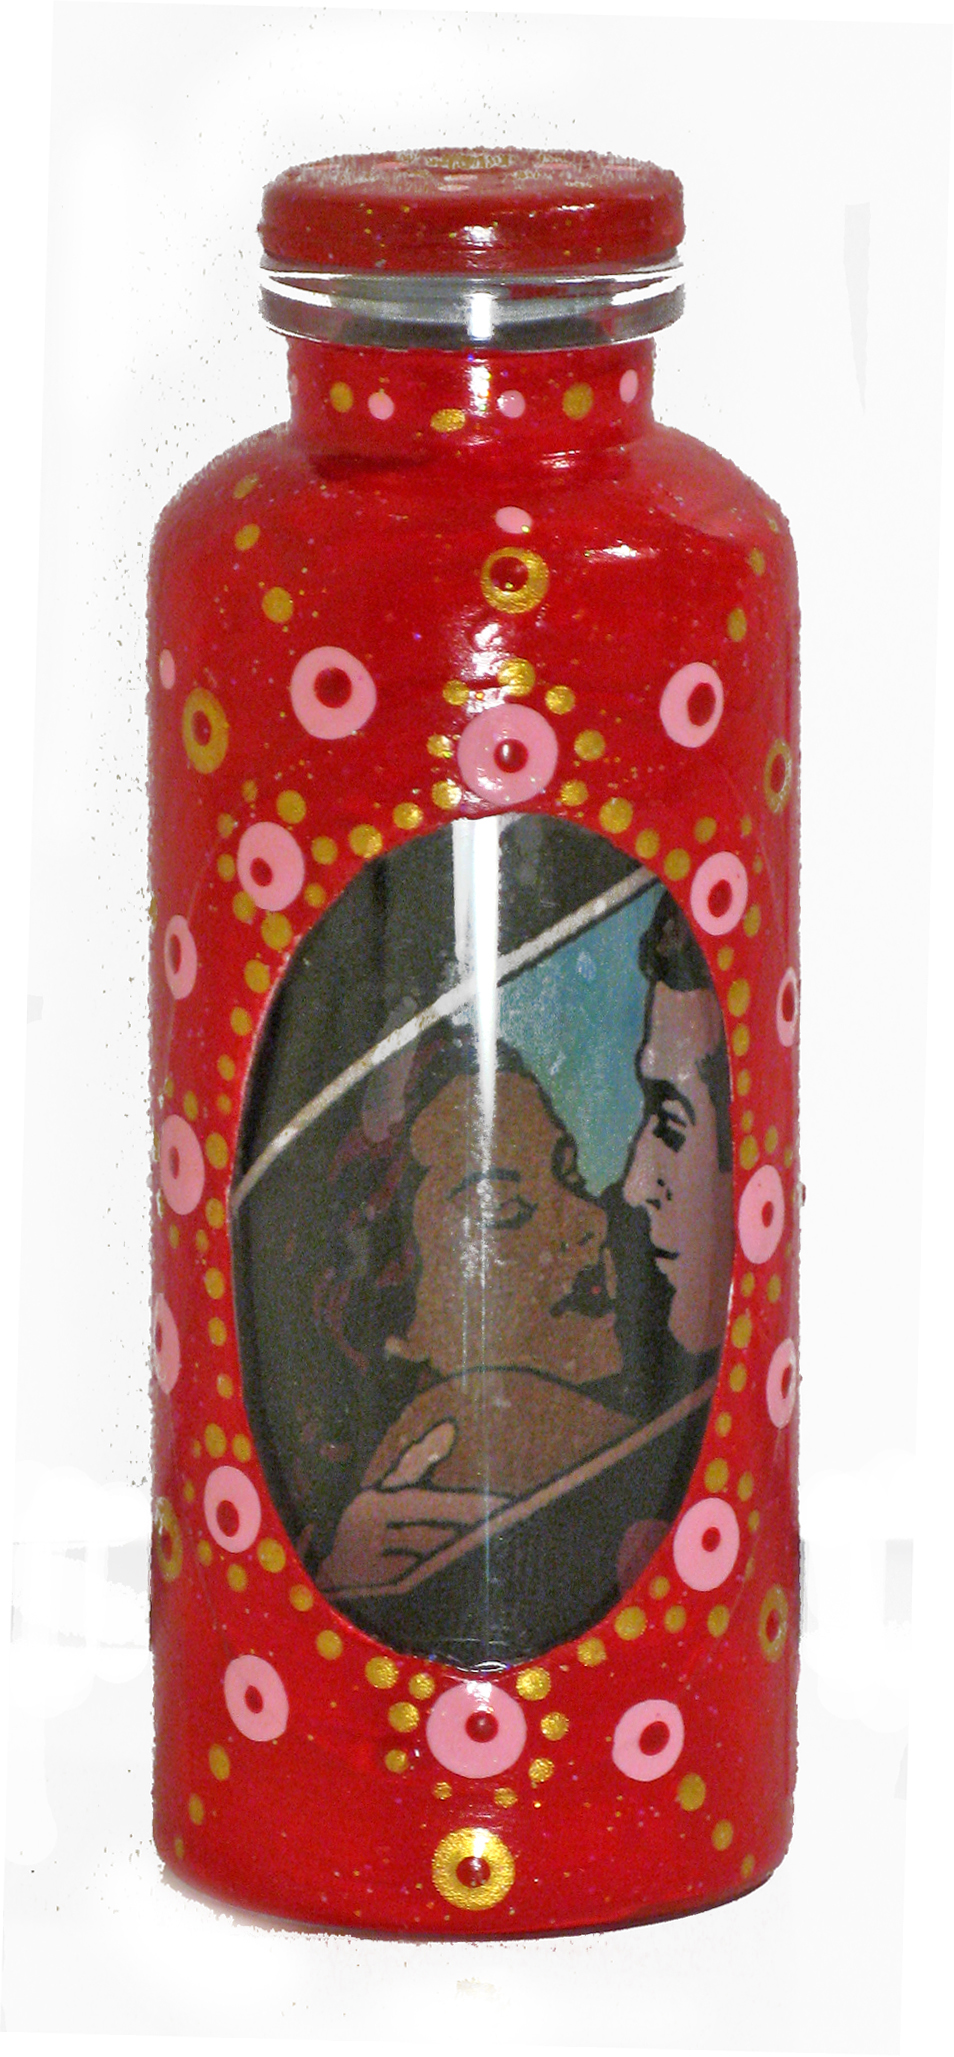 Lucky Mojo Curio Co.: Hoodoo Bottle Spell - Love Me